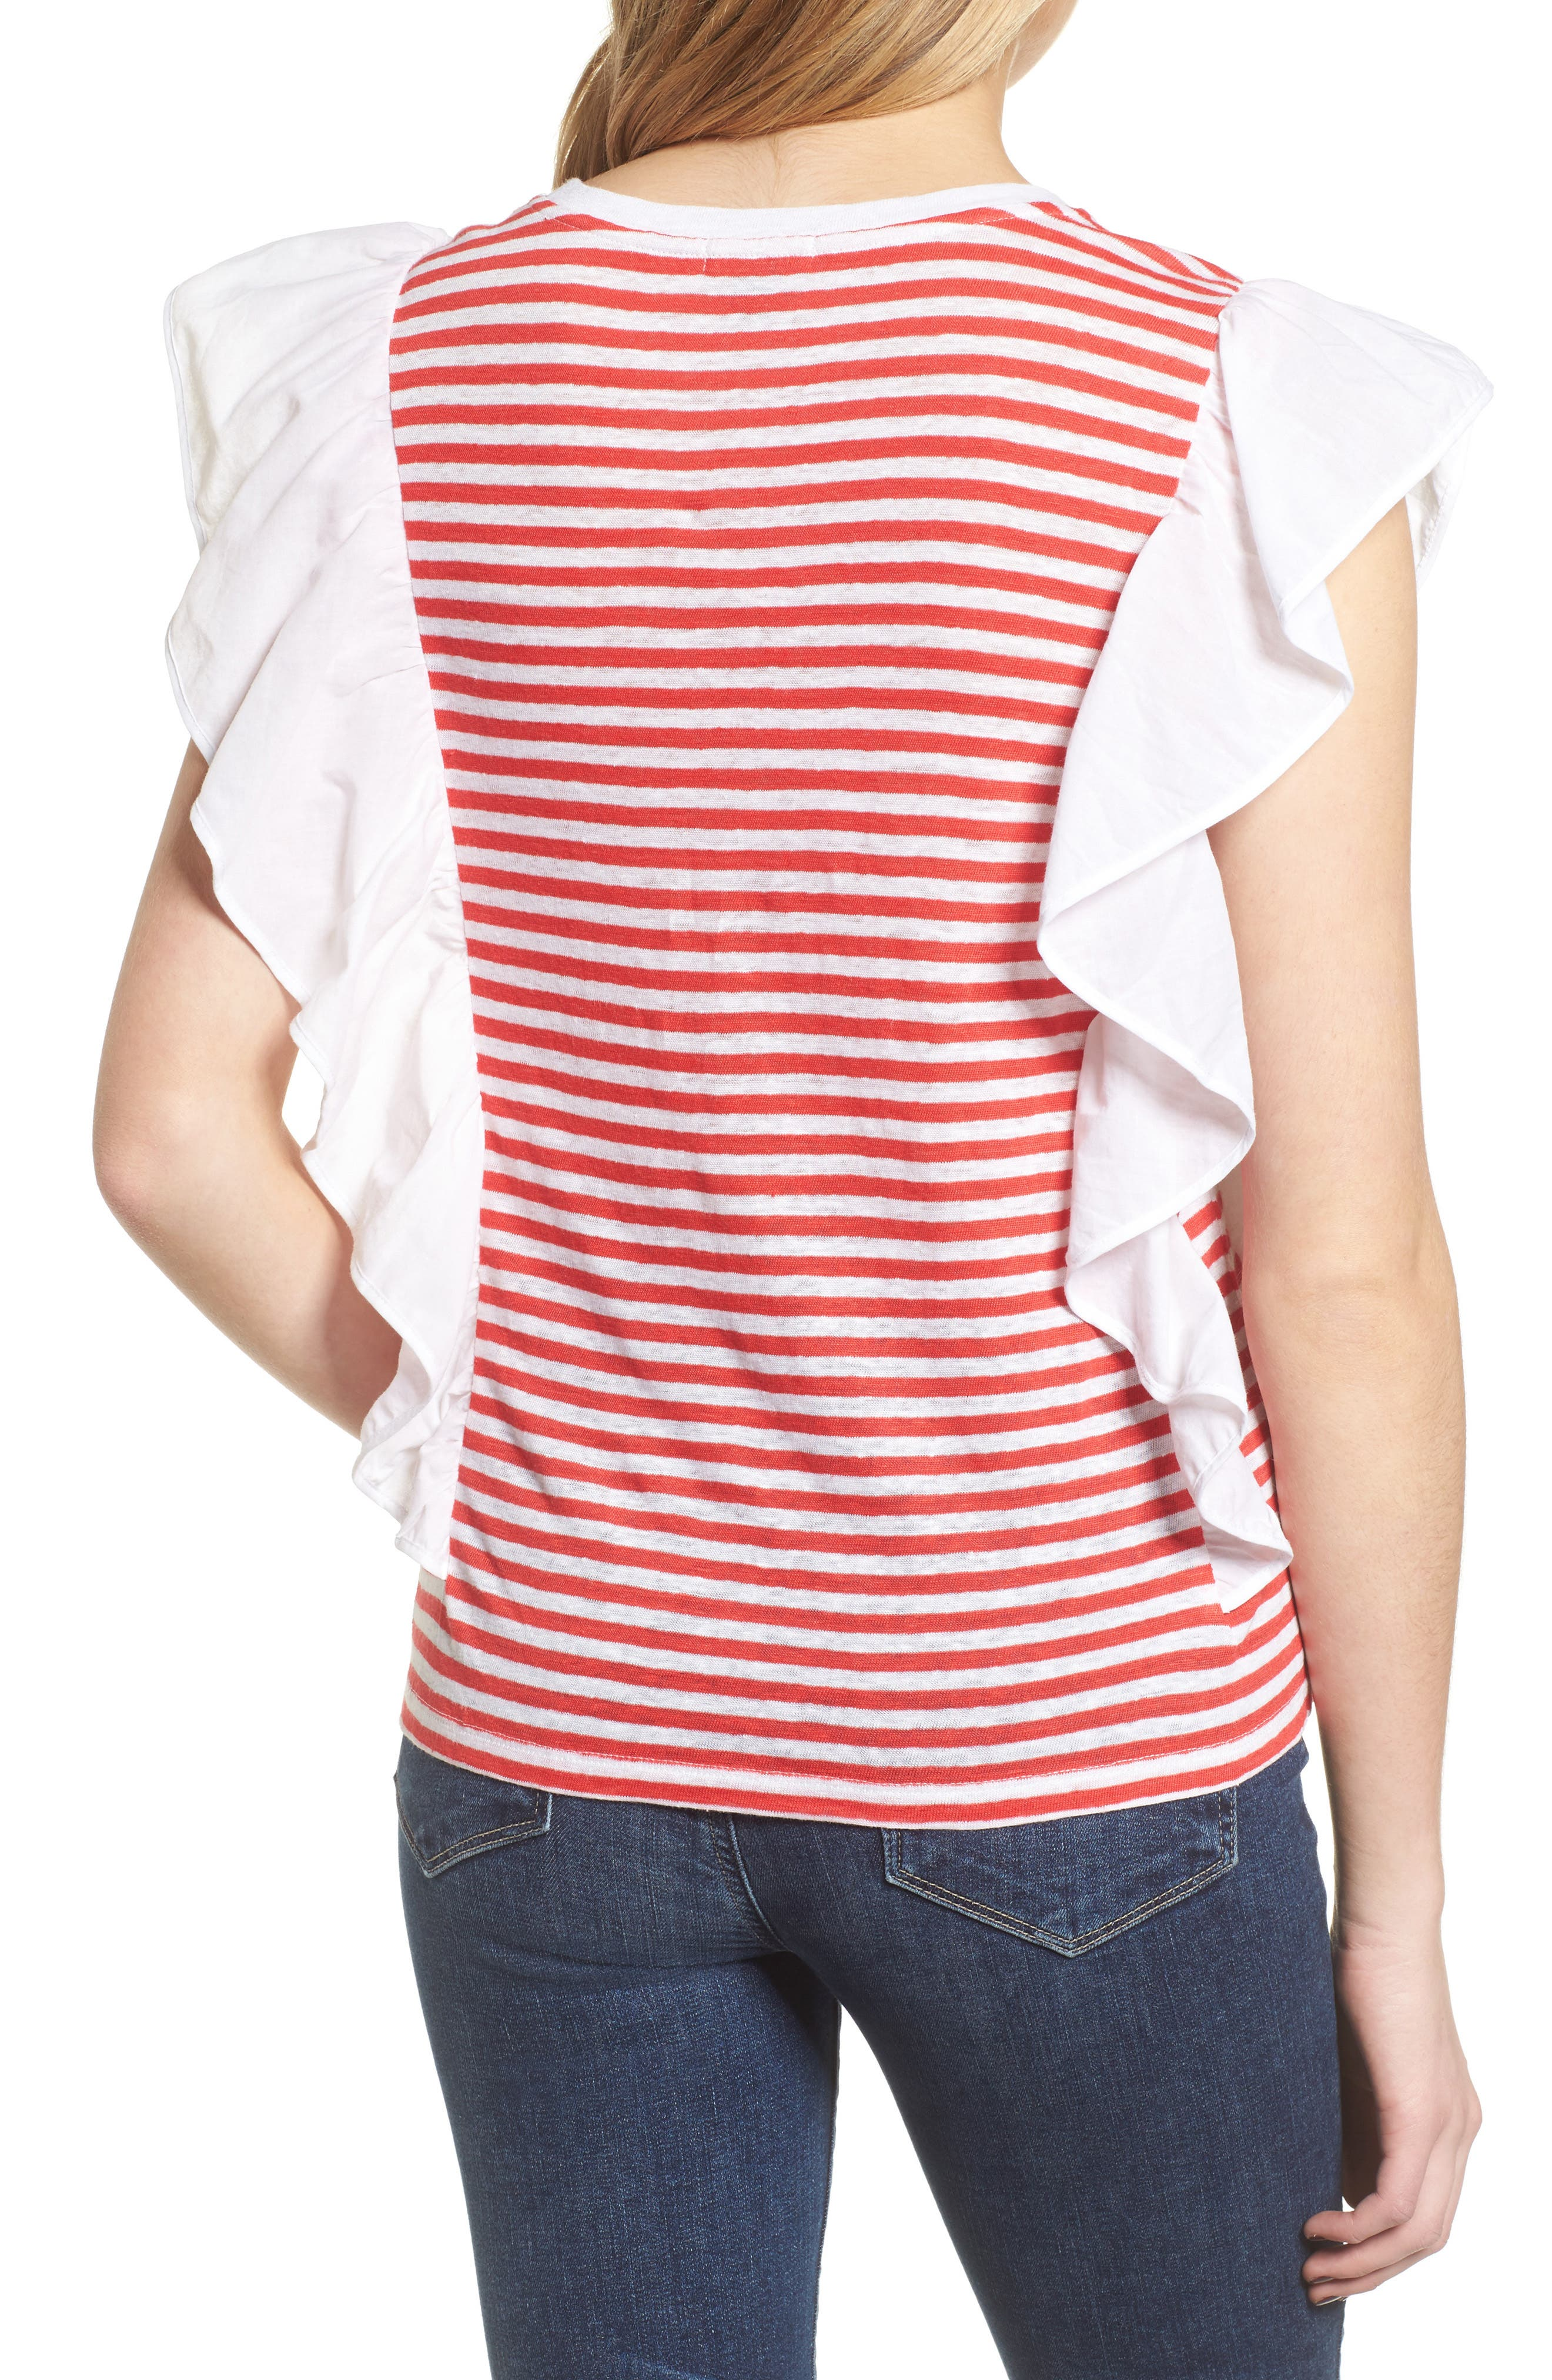 Ruffle Linen Tee,                             Alternate thumbnail 2, color,                             Red Hibiscus Stripe Combo